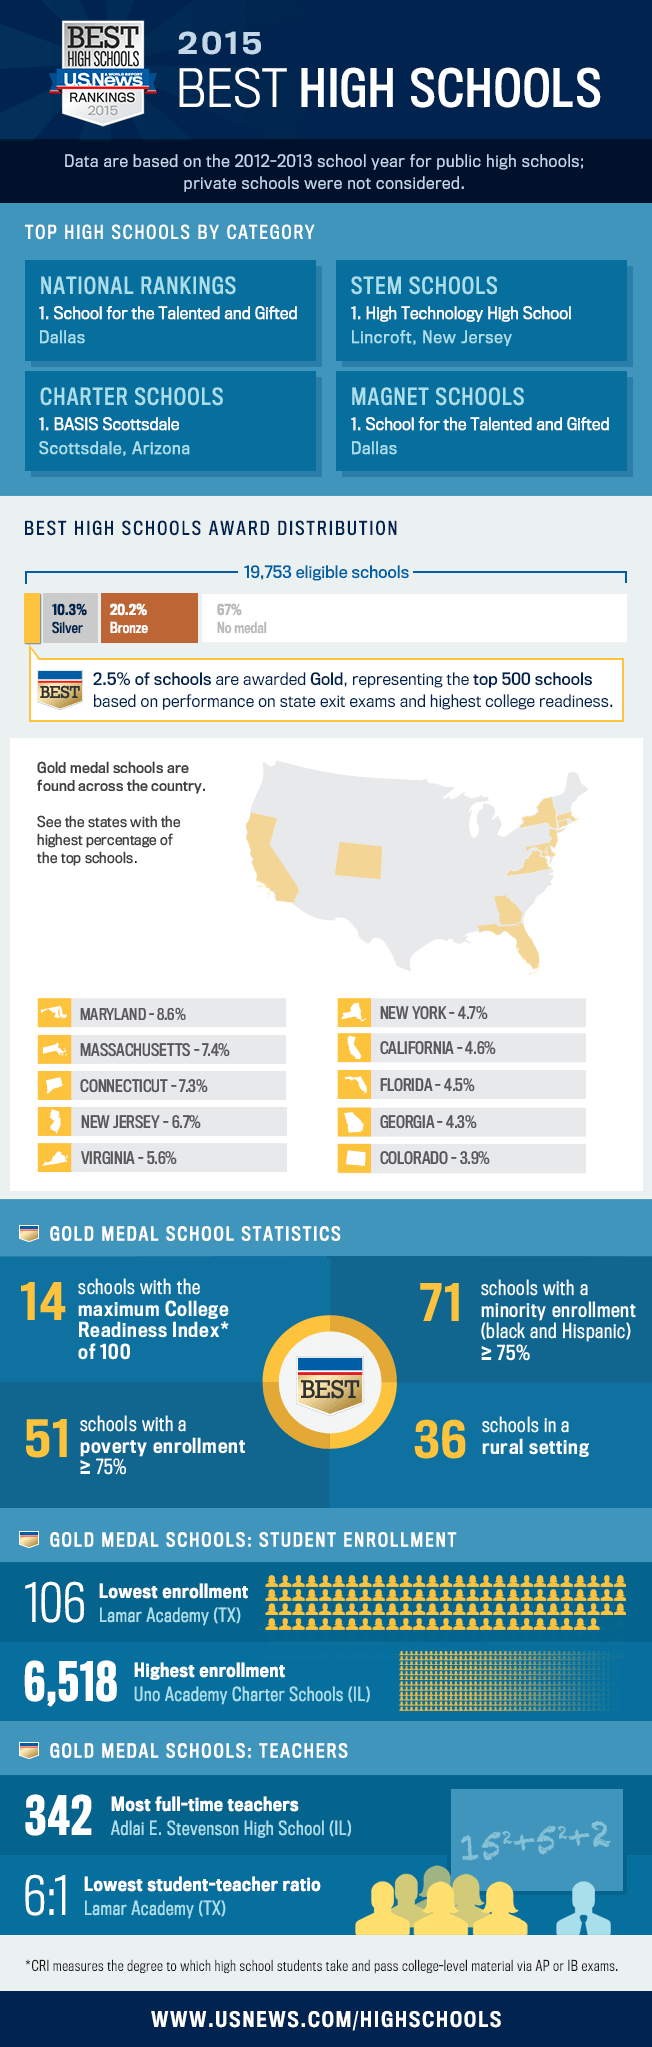 2015 Best High Schools infographic